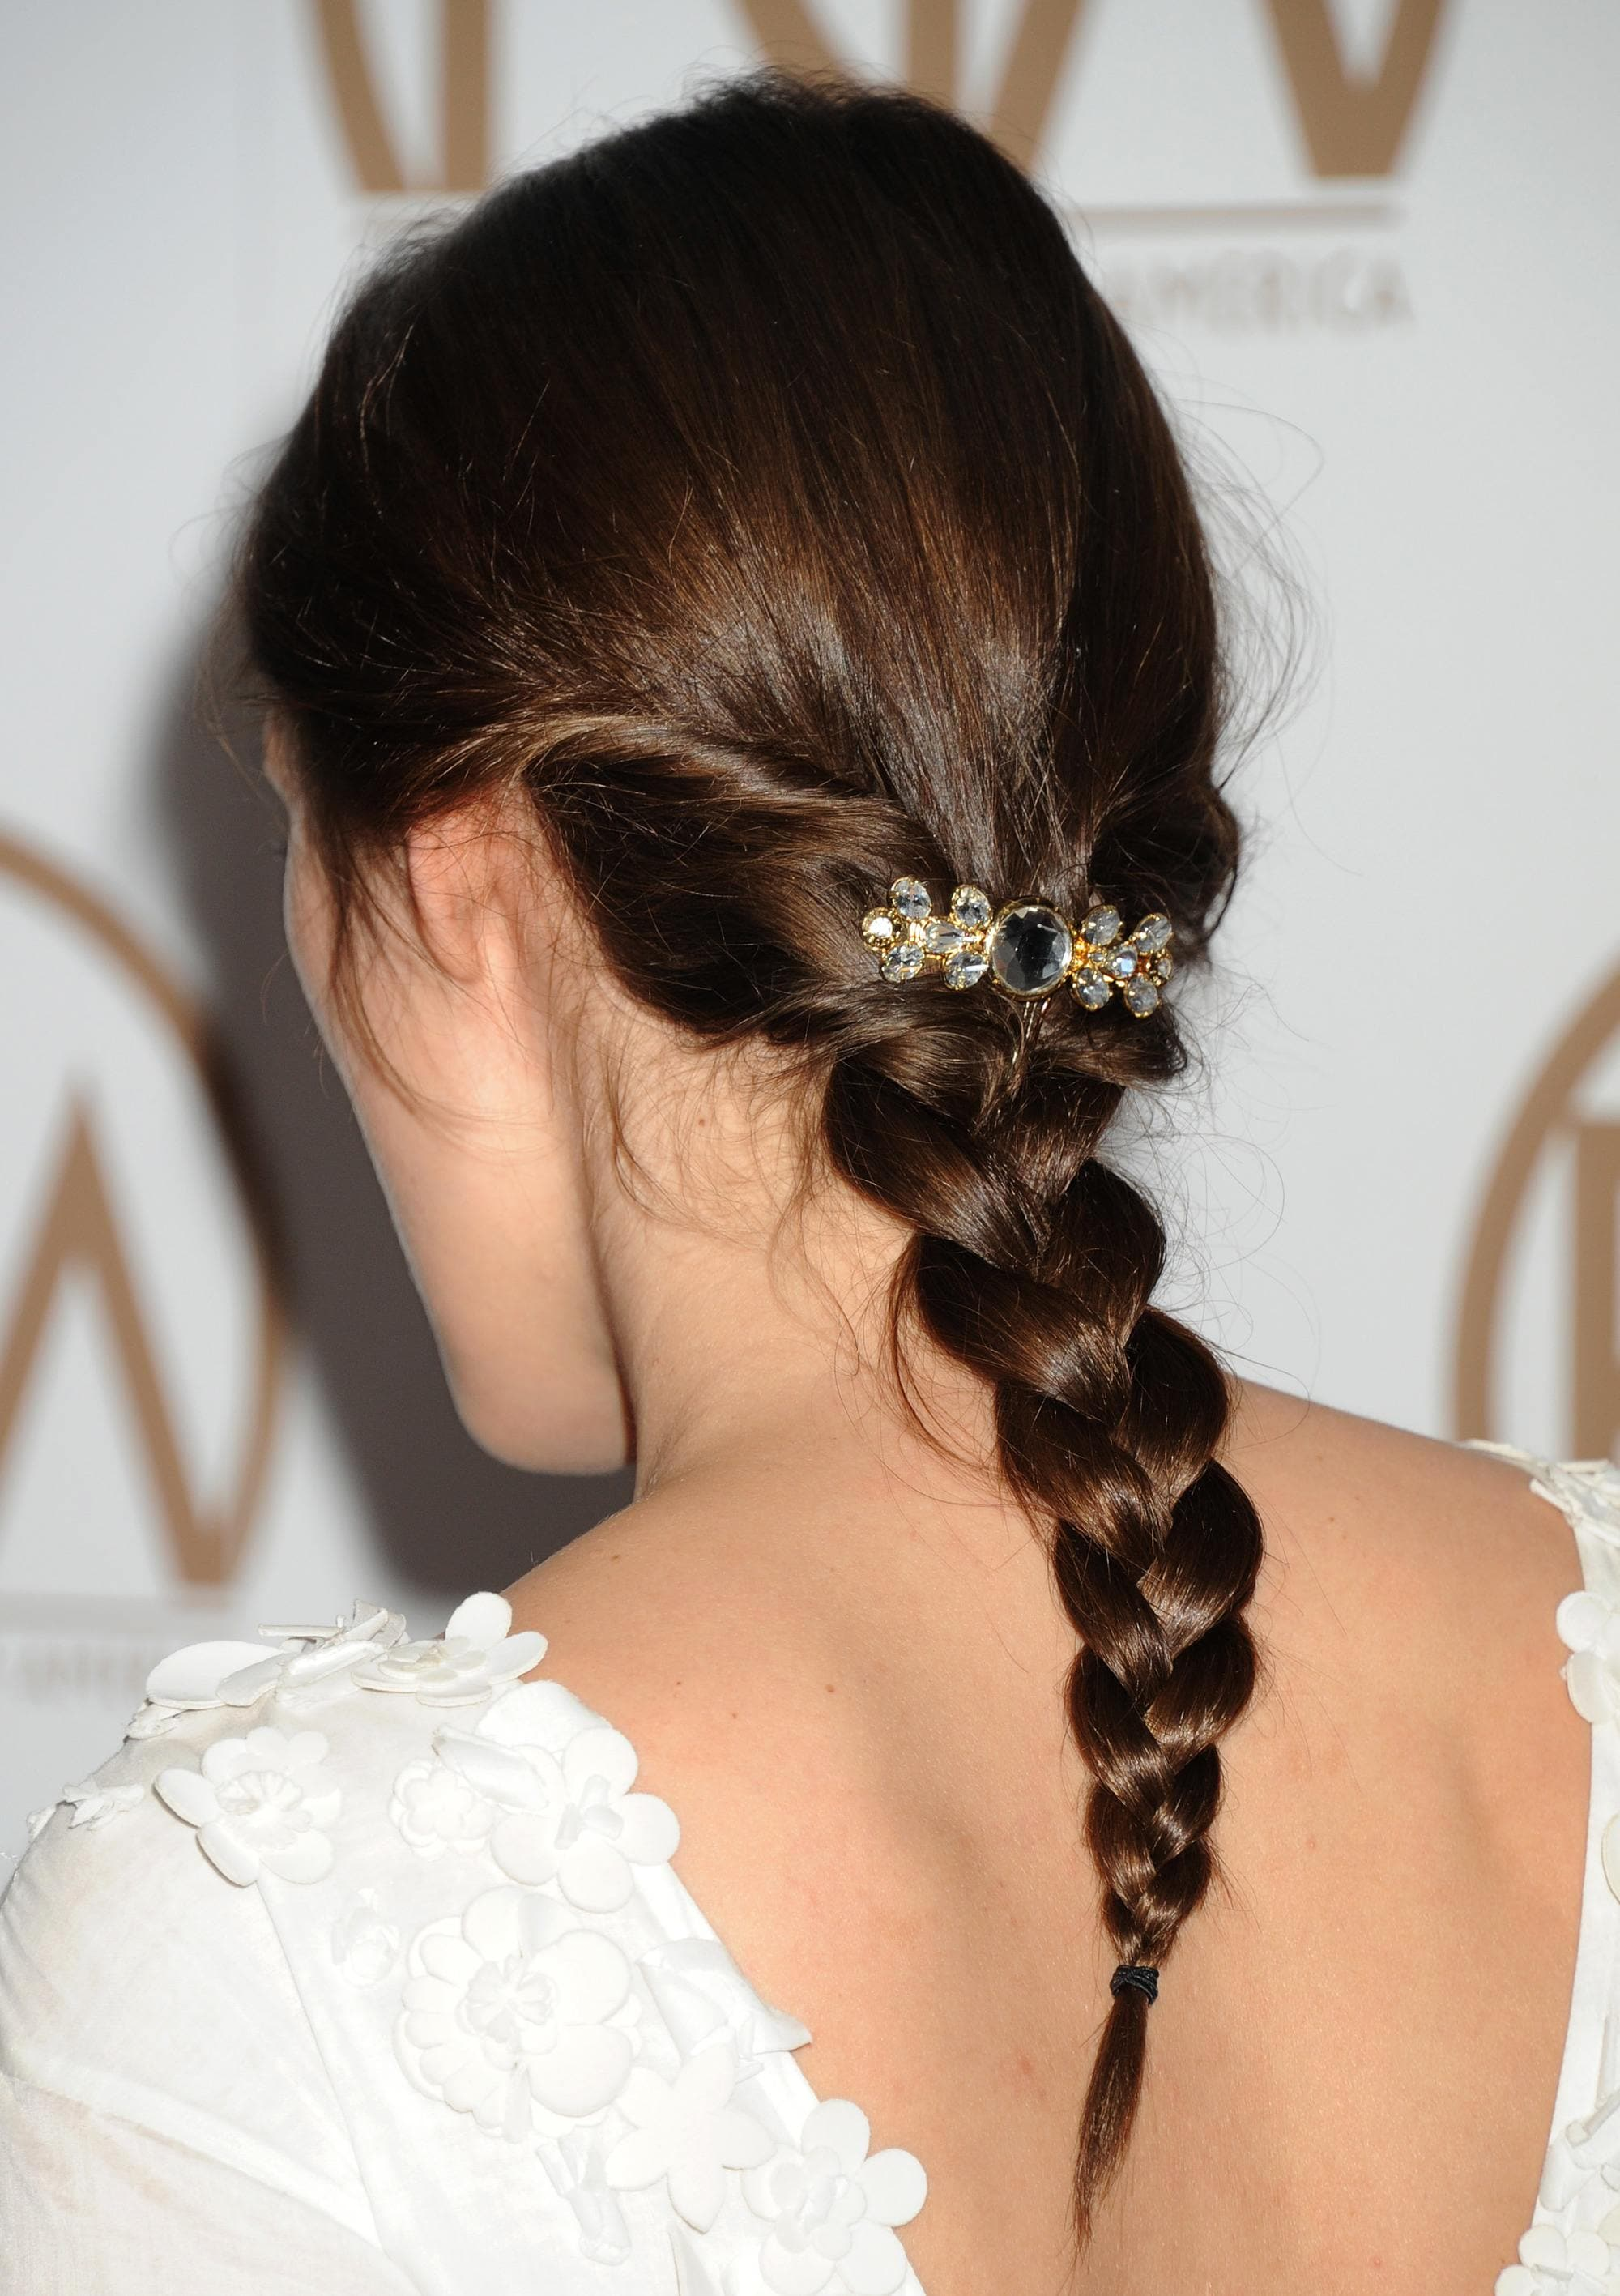 Woman with dark brown hair styled into a low braid with pins